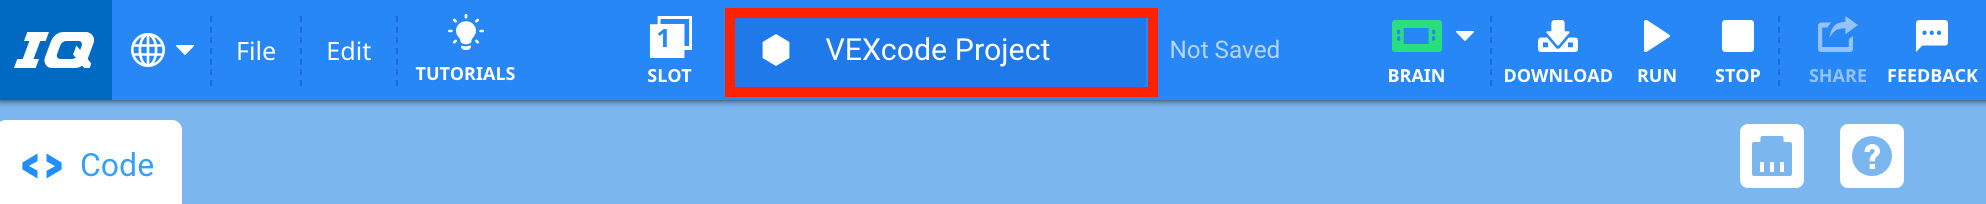 Project name